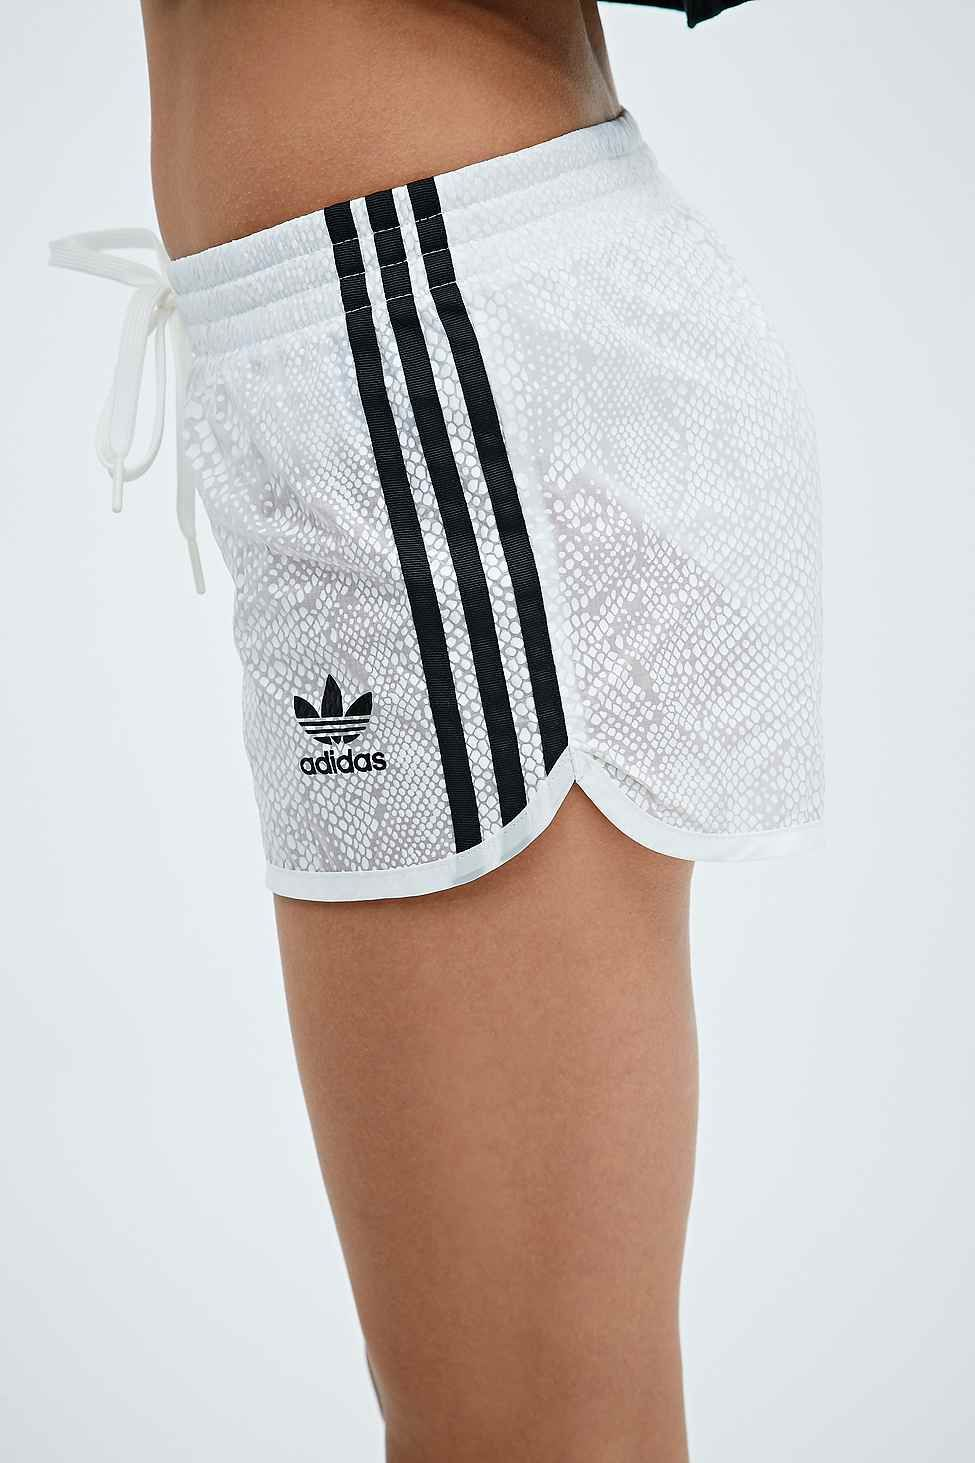 Adidas Running Shorts in White  6dcffd0ab5c9